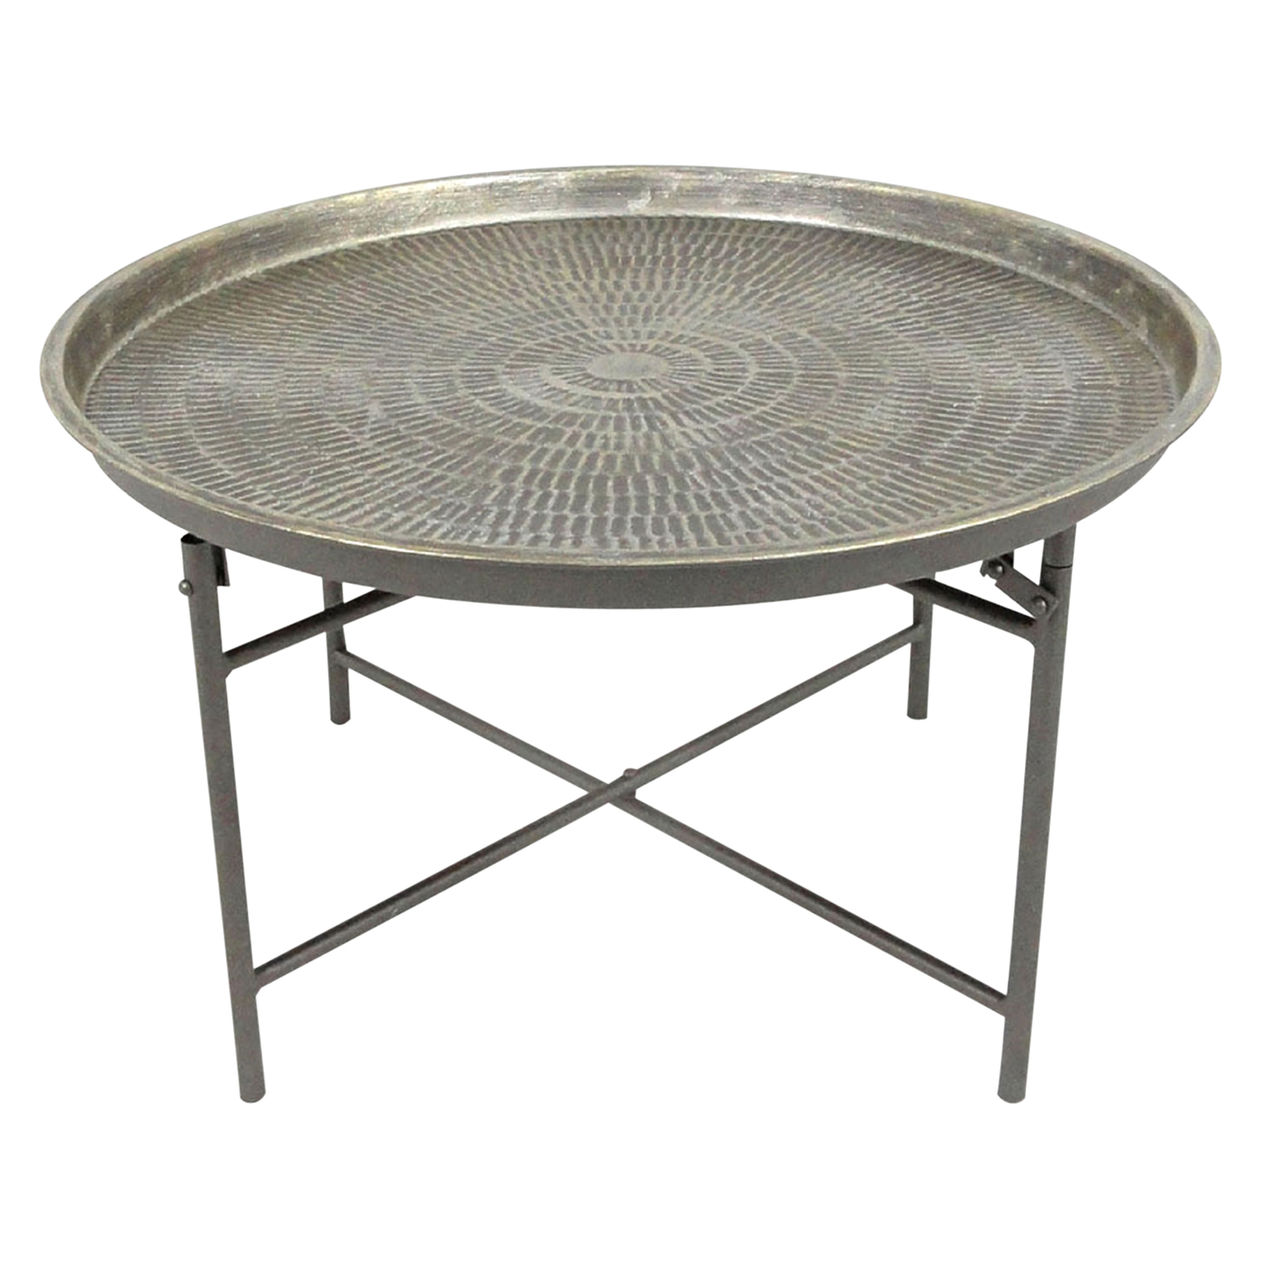 base iron set chairs furniture dining round patio gold tables millet outdoor bistro top bas kitchen wood side table nesting black end and garden small room drum large glass pretty